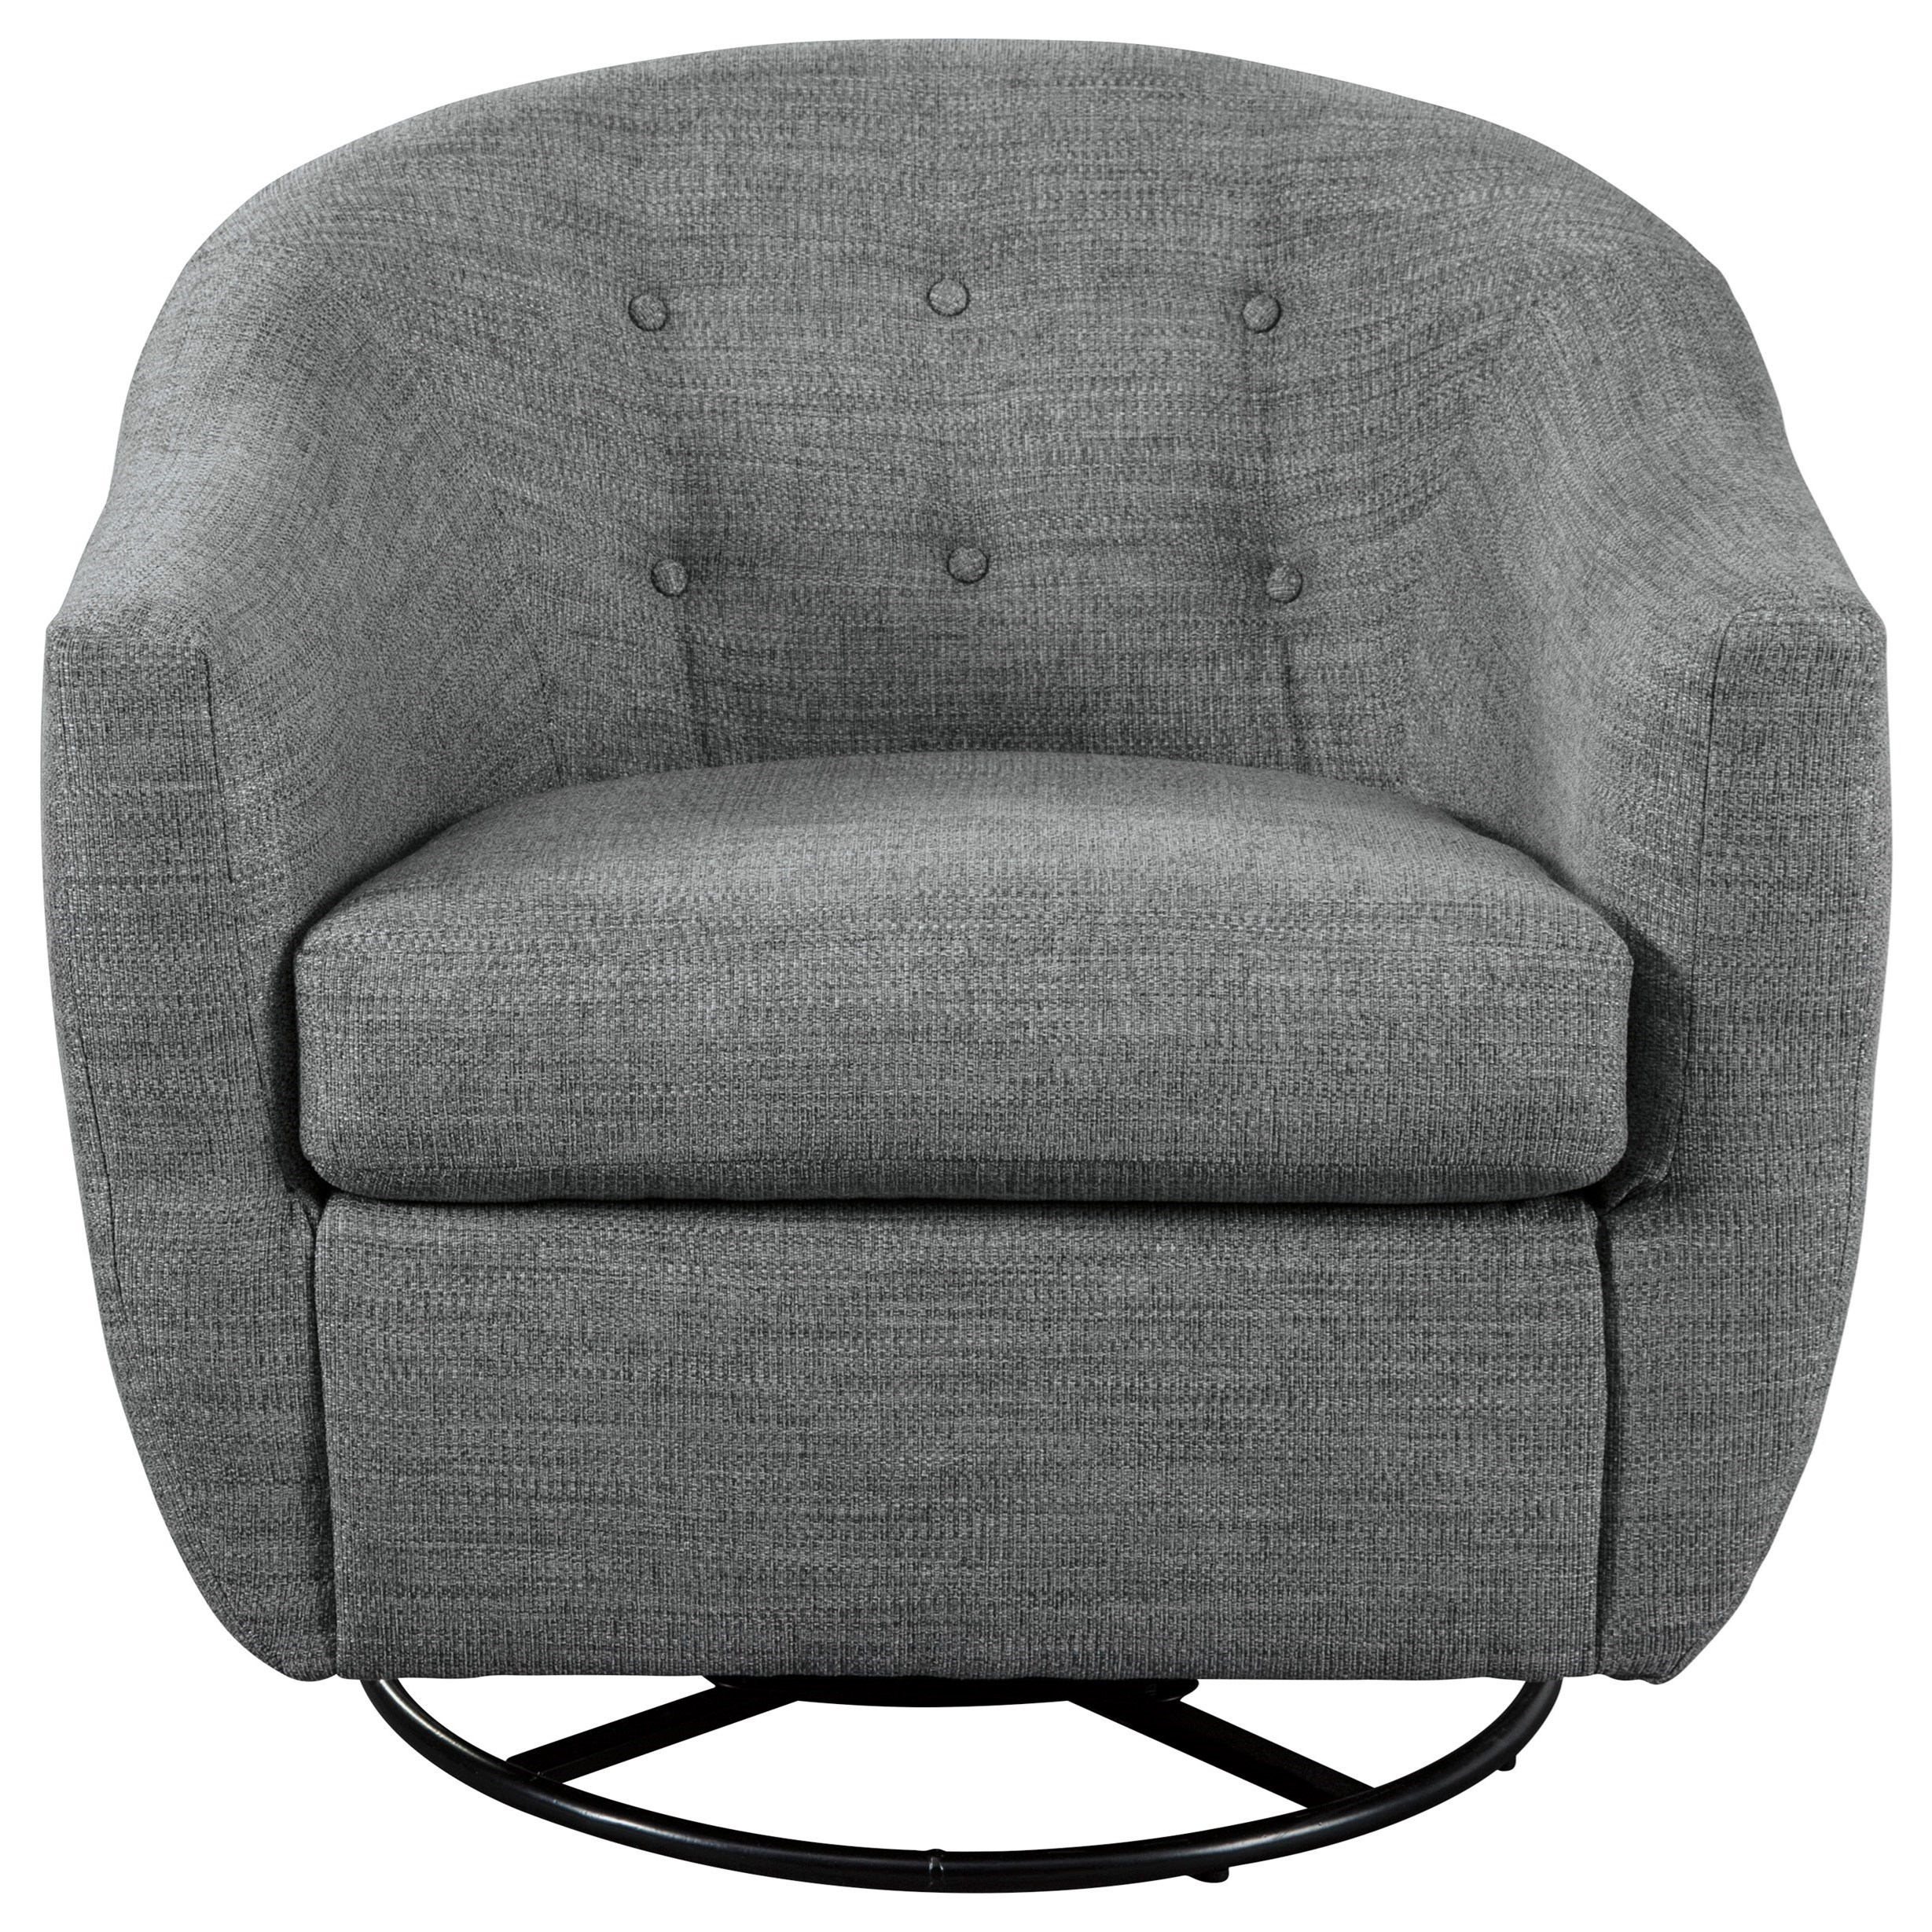 Mandon Swivel Accent Chair by Benchcraft at HomeWorld Furniture